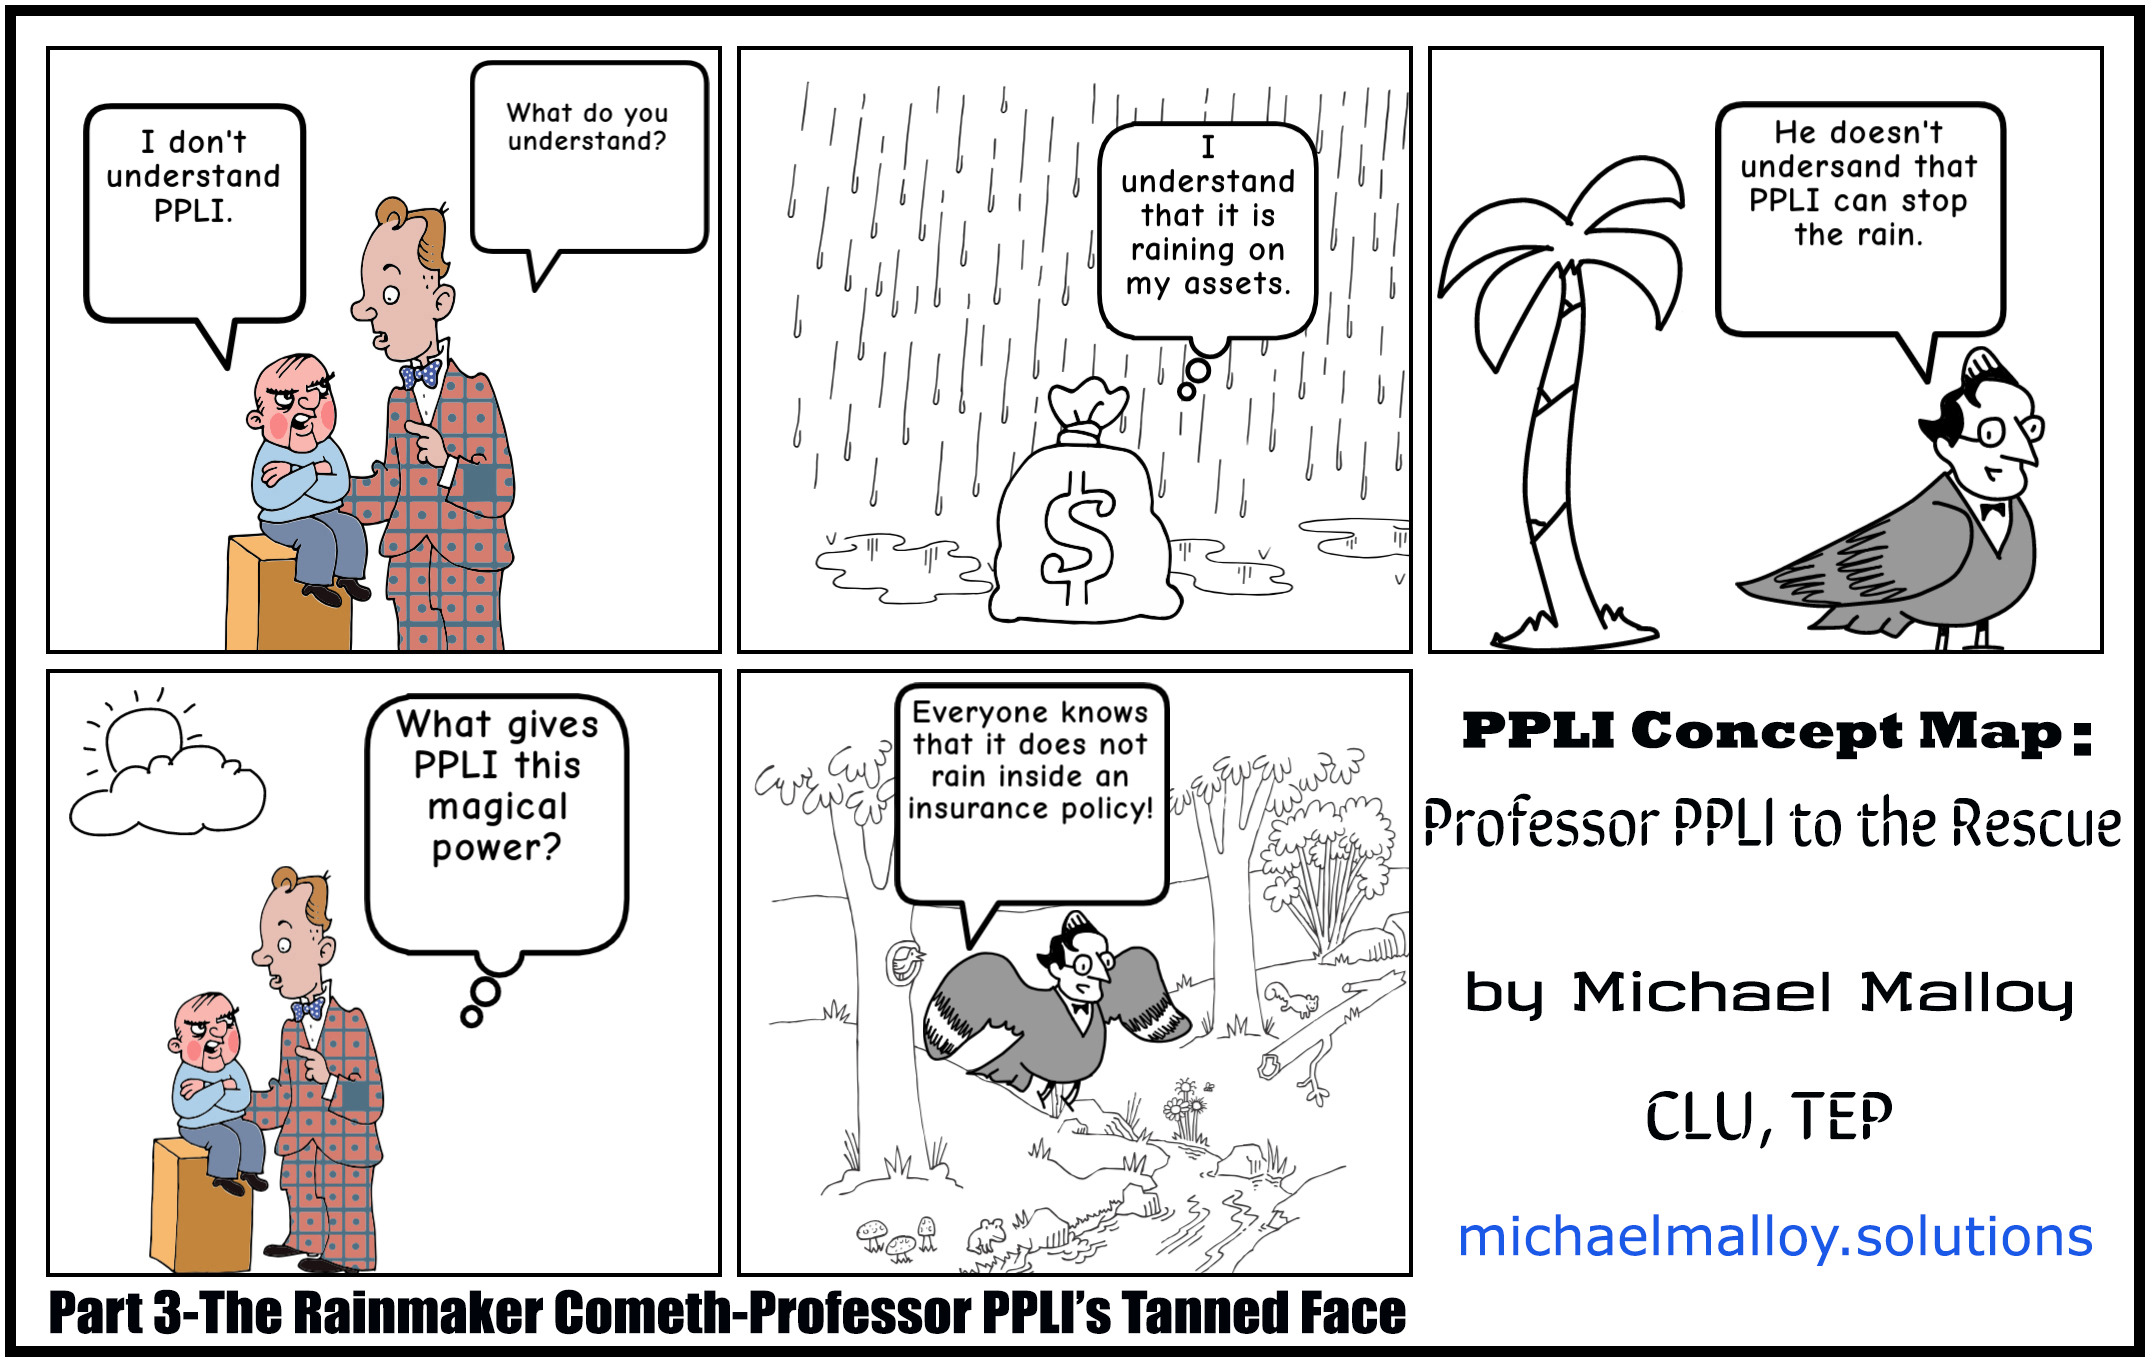 Part 3-The Rainmaker Cometh-Professor PPLI's Tanned Face